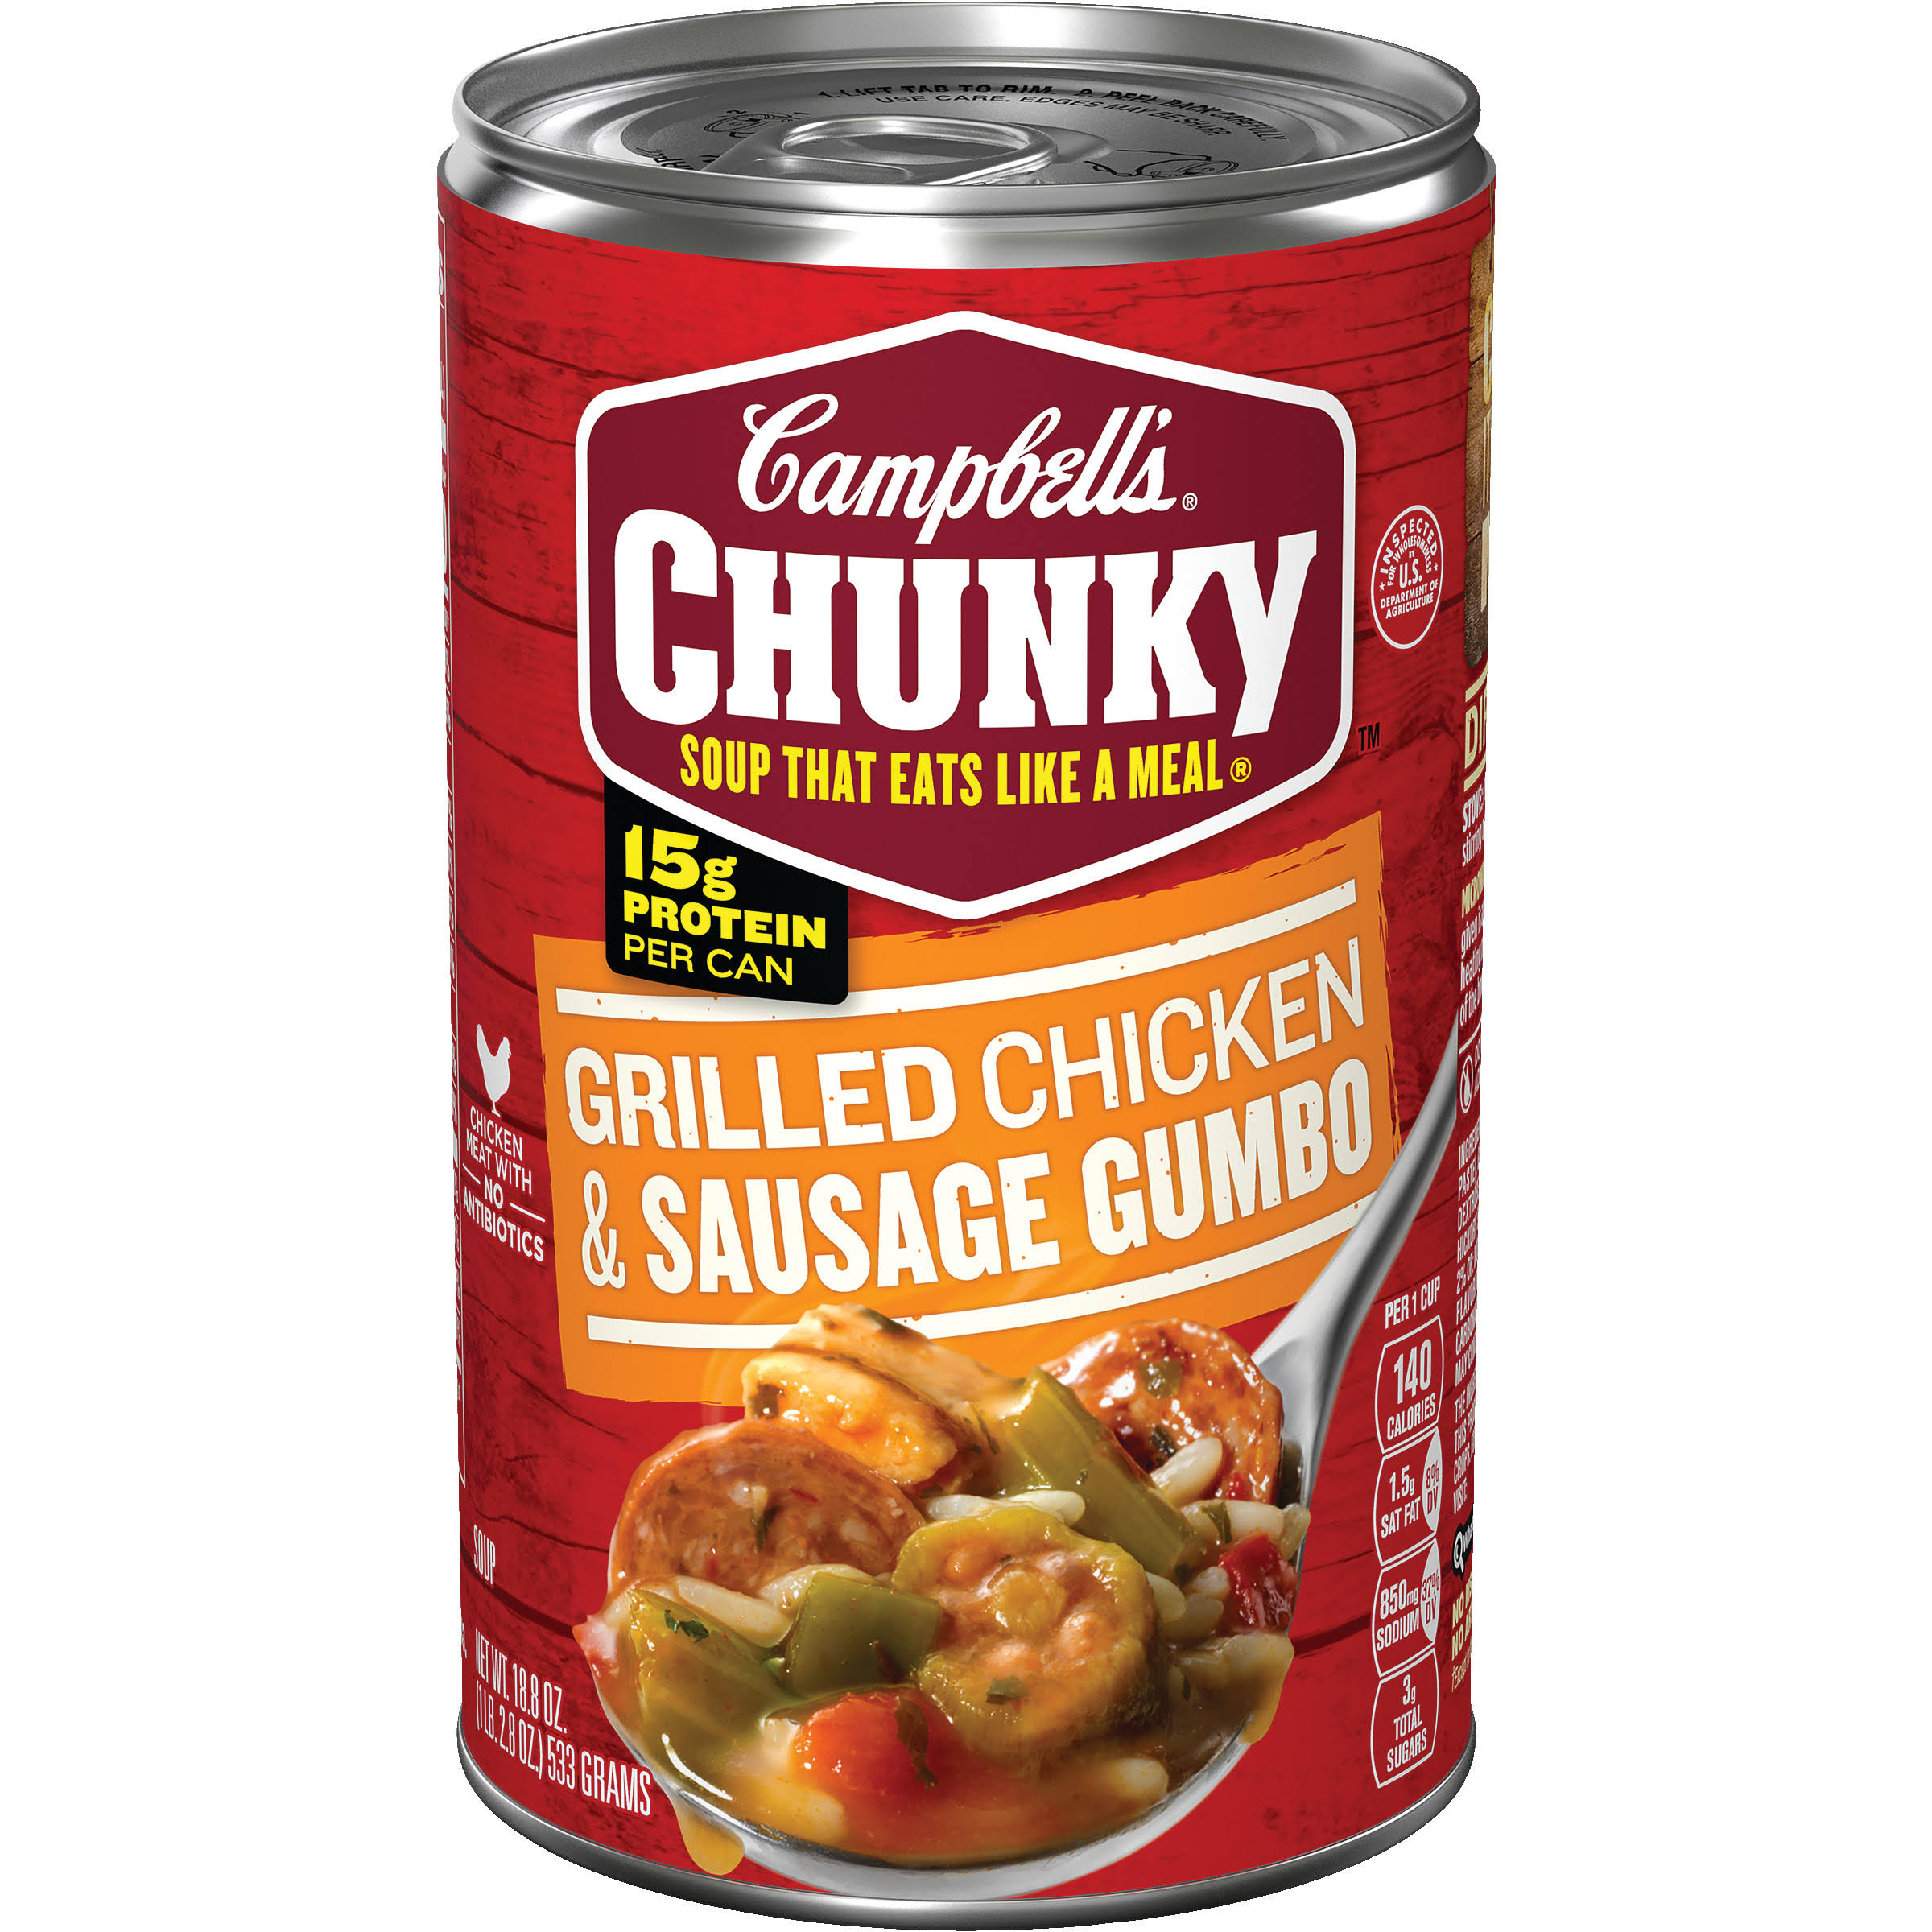 Campbells Chunky Grilled Chicken and Sausage Gumbo Soup - 18.8oz